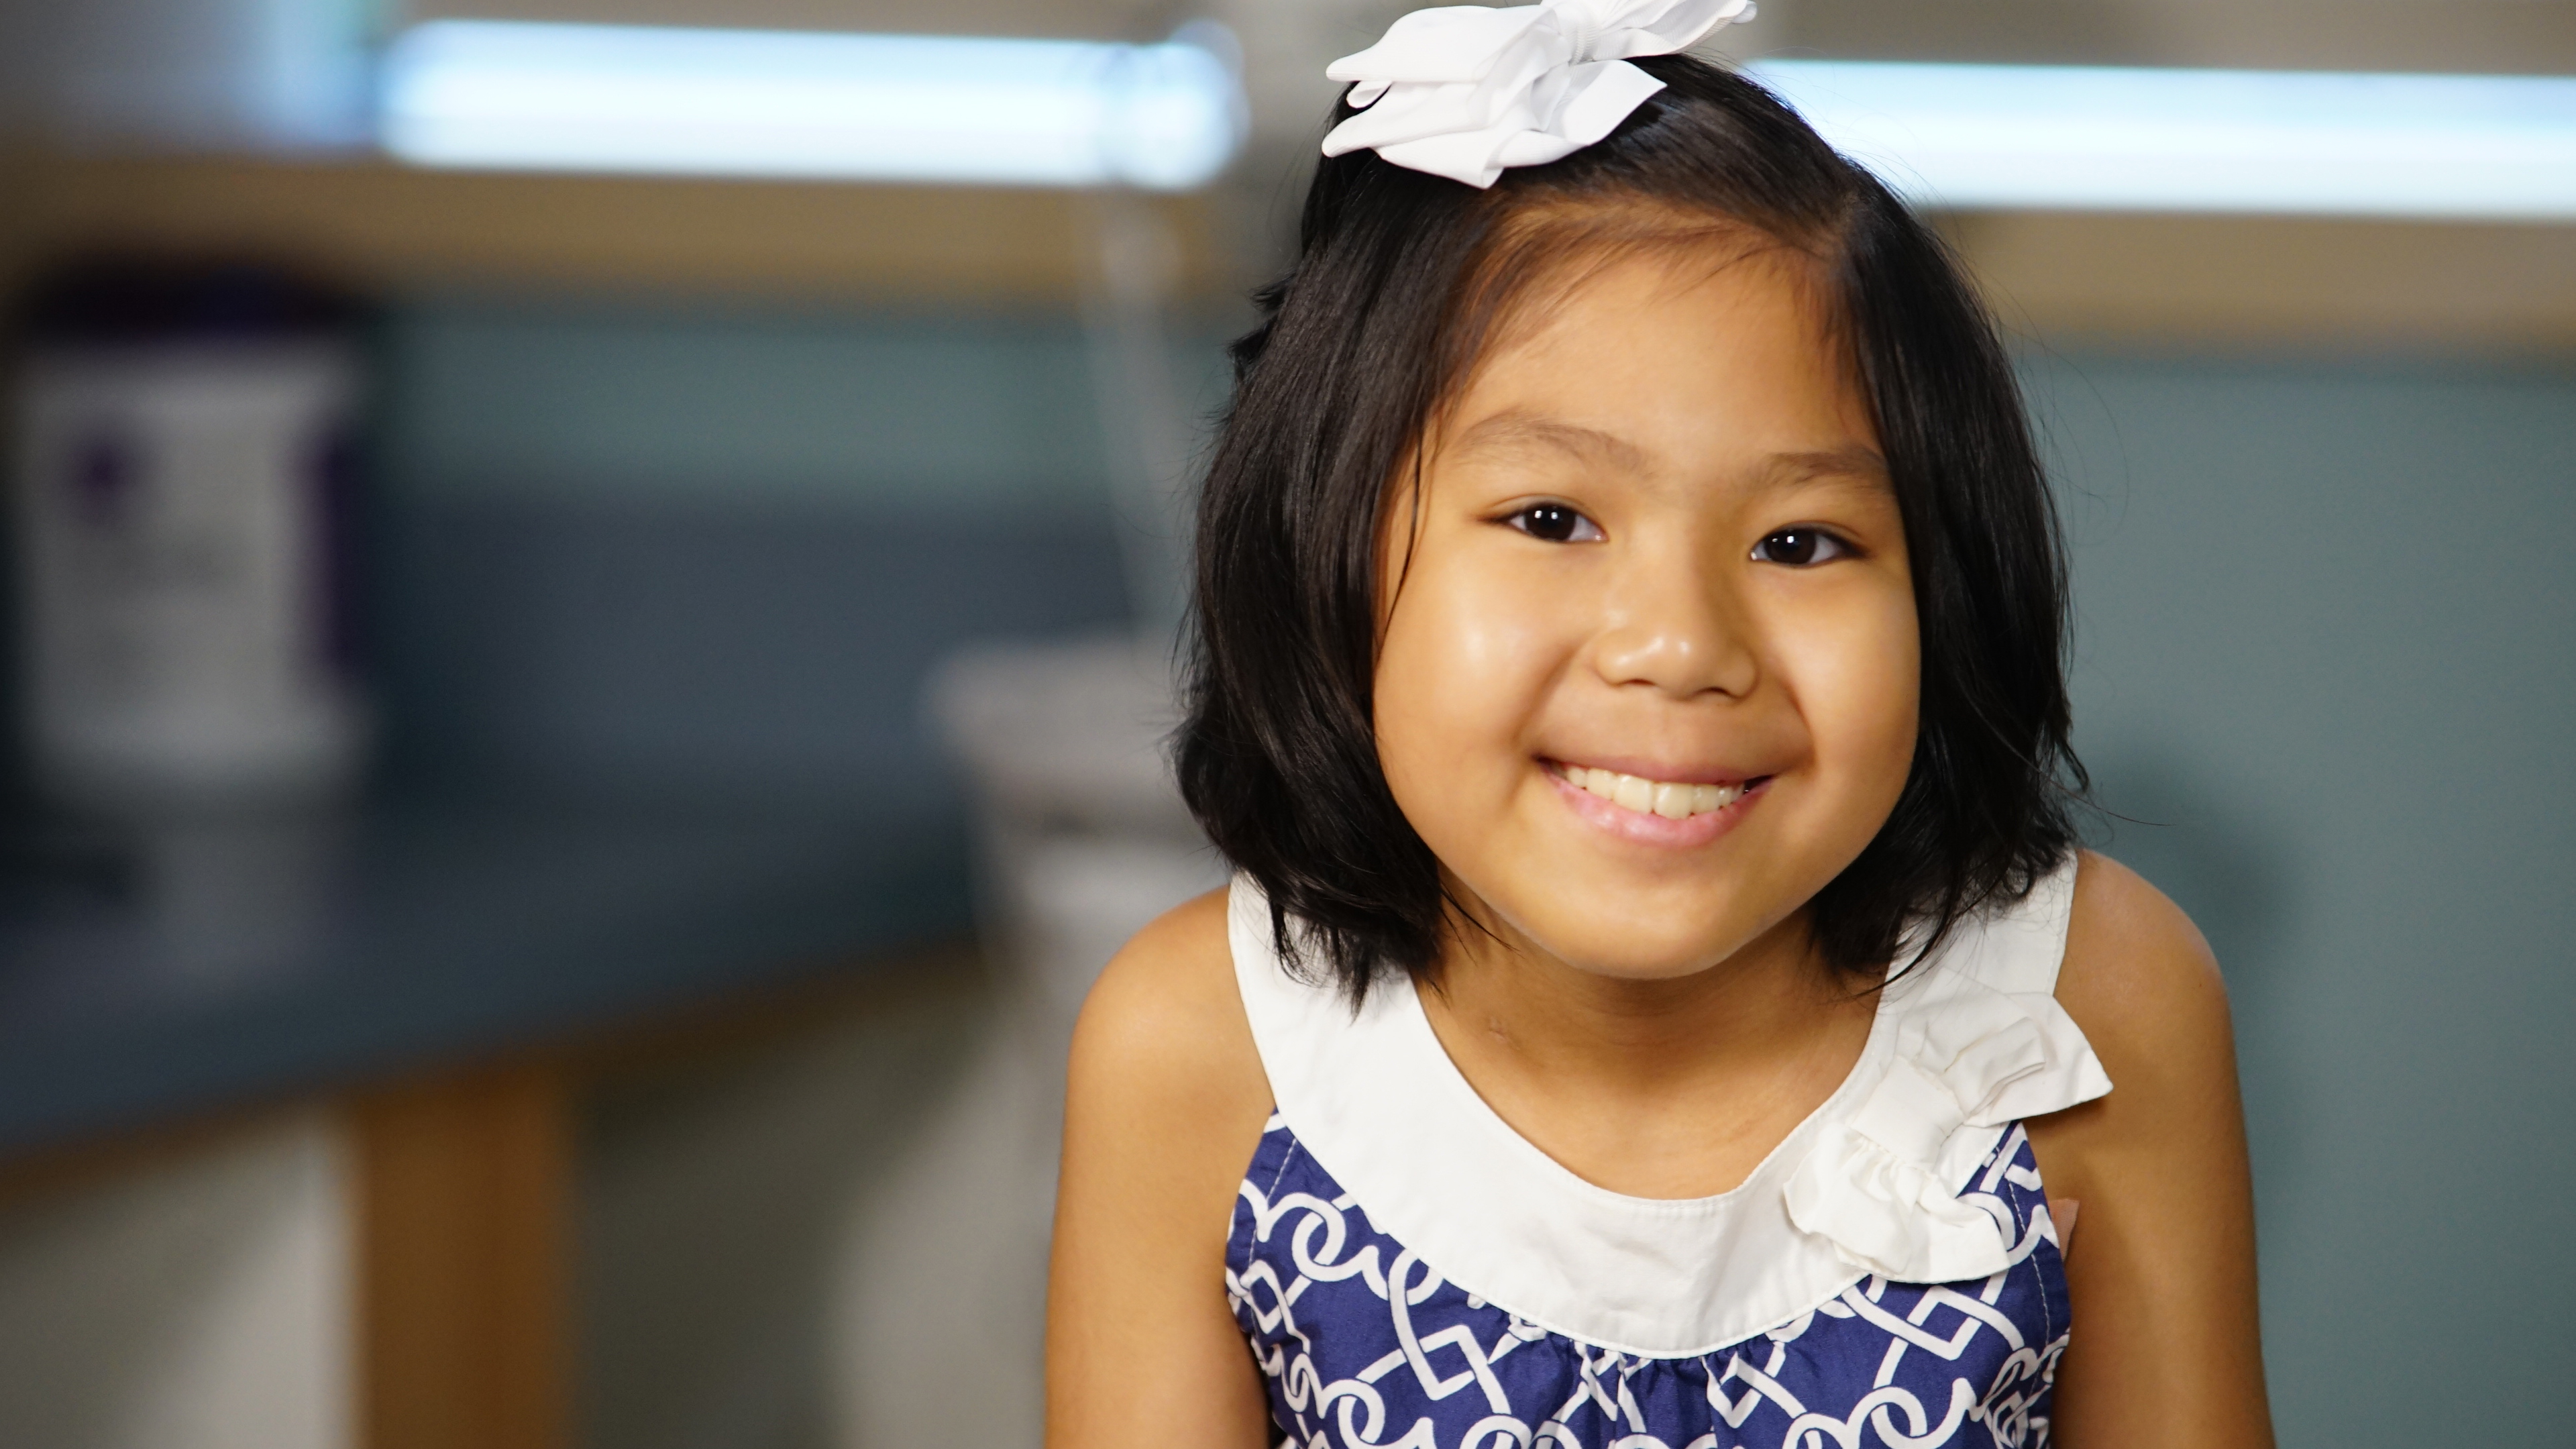 Mya McKenzie Nguyen is only 9 years old, and she has already beaten cancer six times. How? With the heart and courage of a lion – plus a nationwide search for new treatments that always led her family back home to LCH.